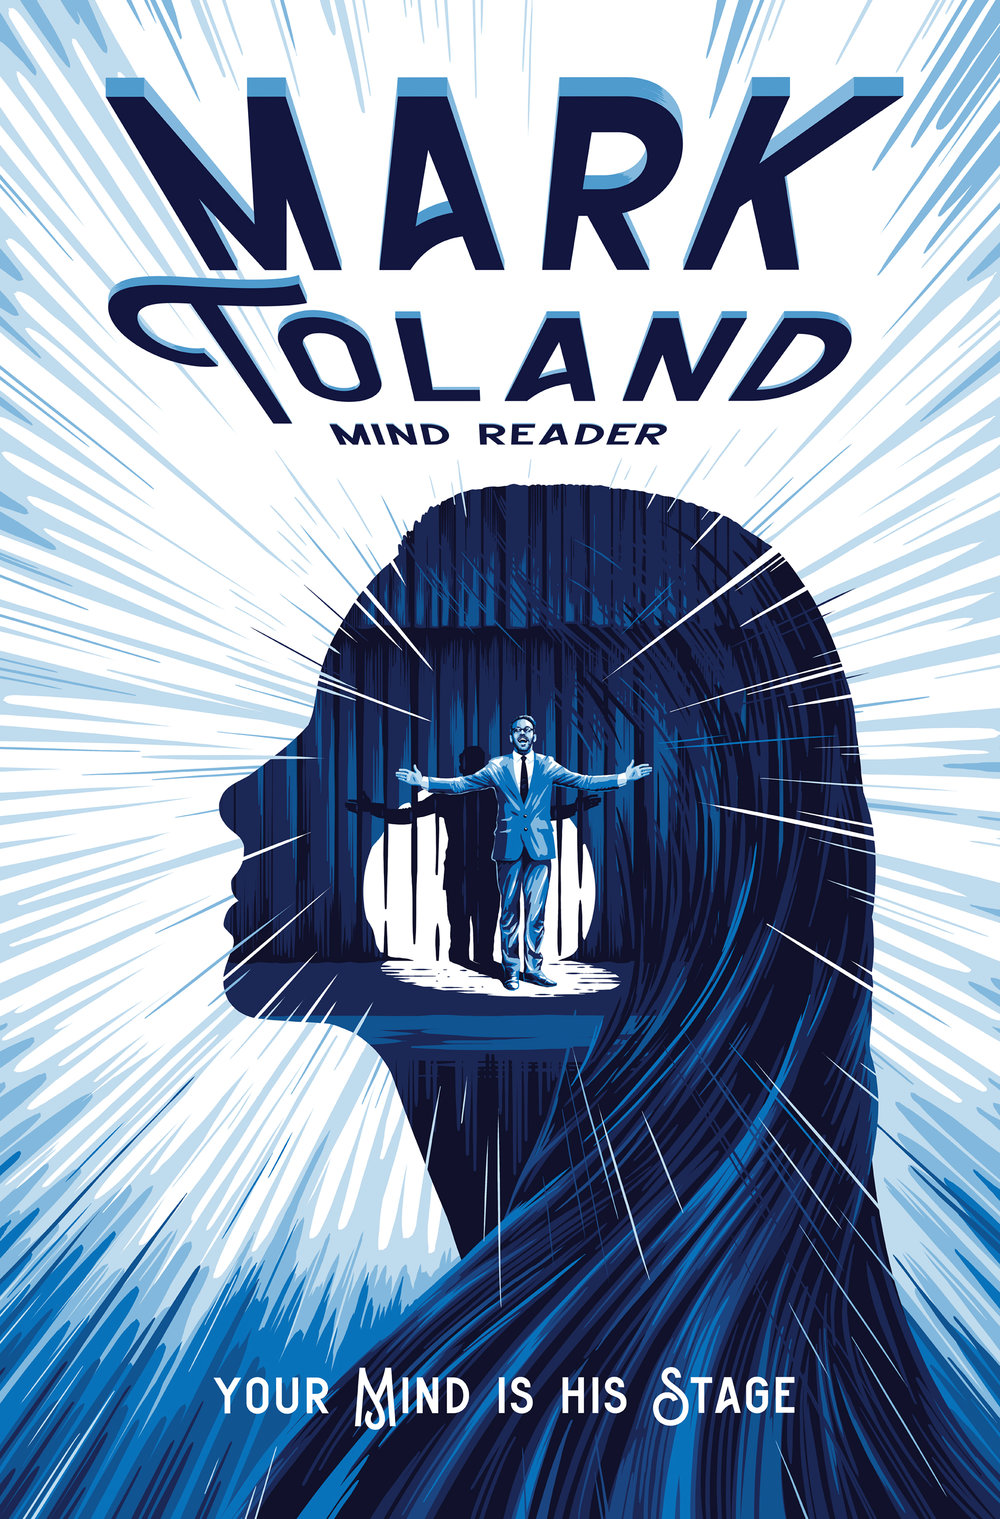 Mark-Toland-Mind-Reader-Poster.jpg